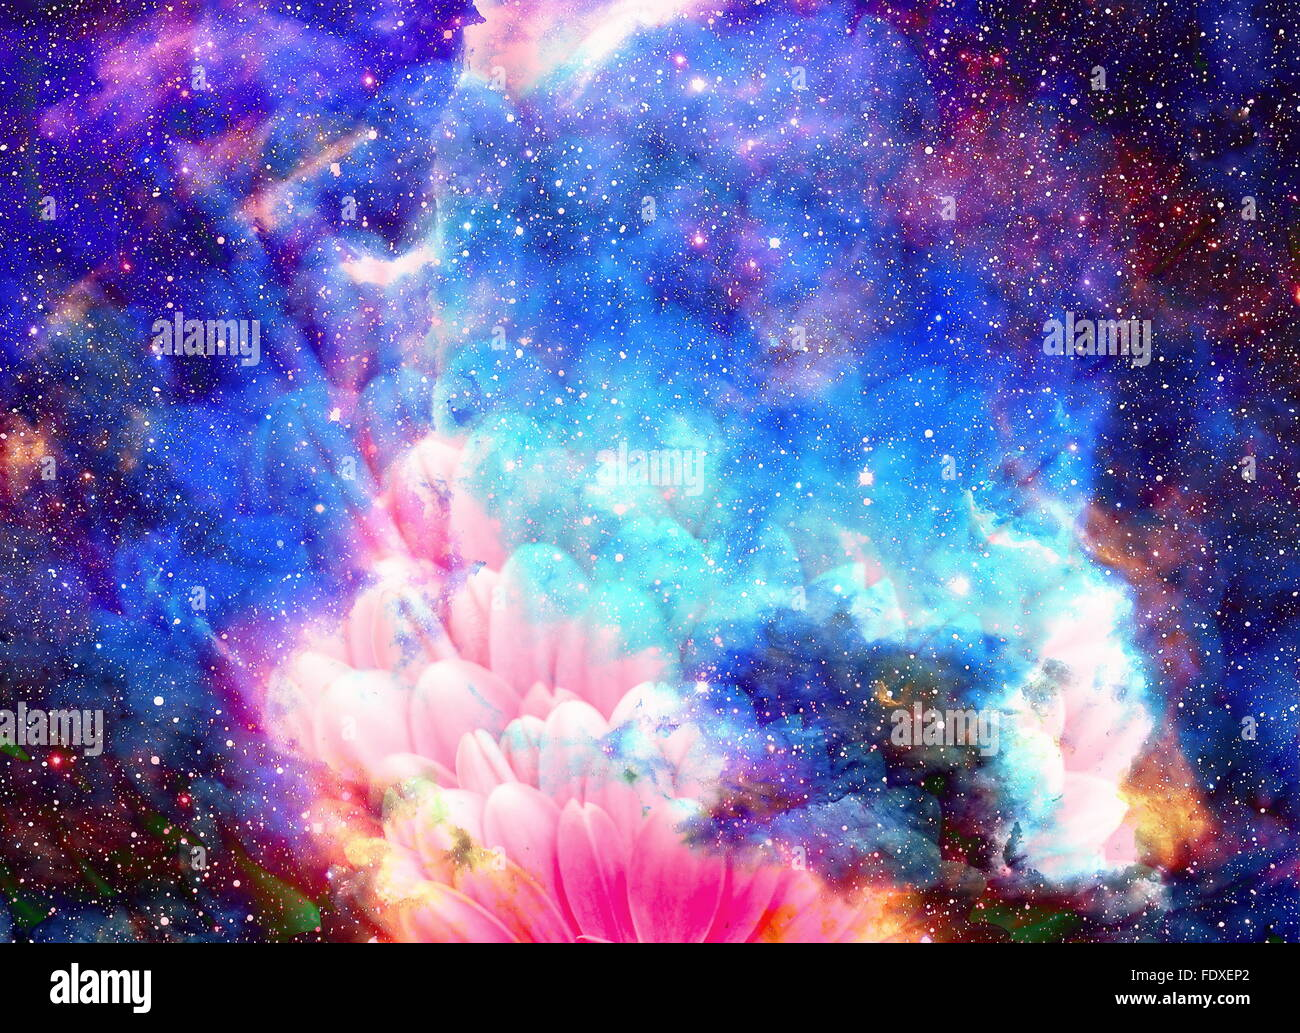 Cute Love Hd Images For Wallpaper Space And Stars With Flower Color Galaxi Background